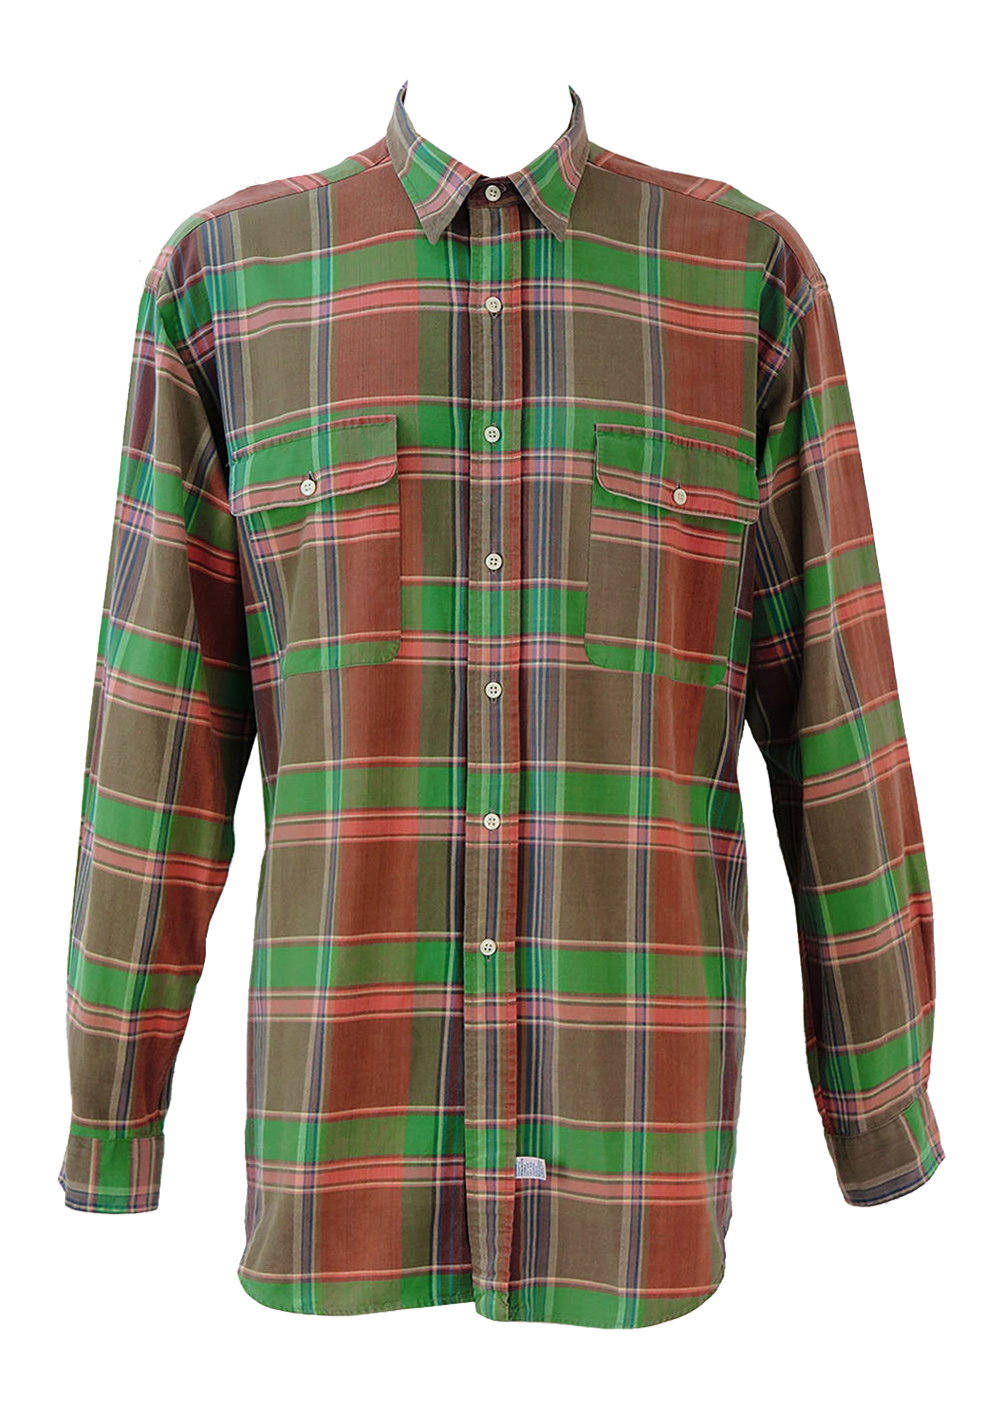 Green And Brown Living Room Decor: Polo By Ralph Lauren Pink, Green & Brown Check Shirt